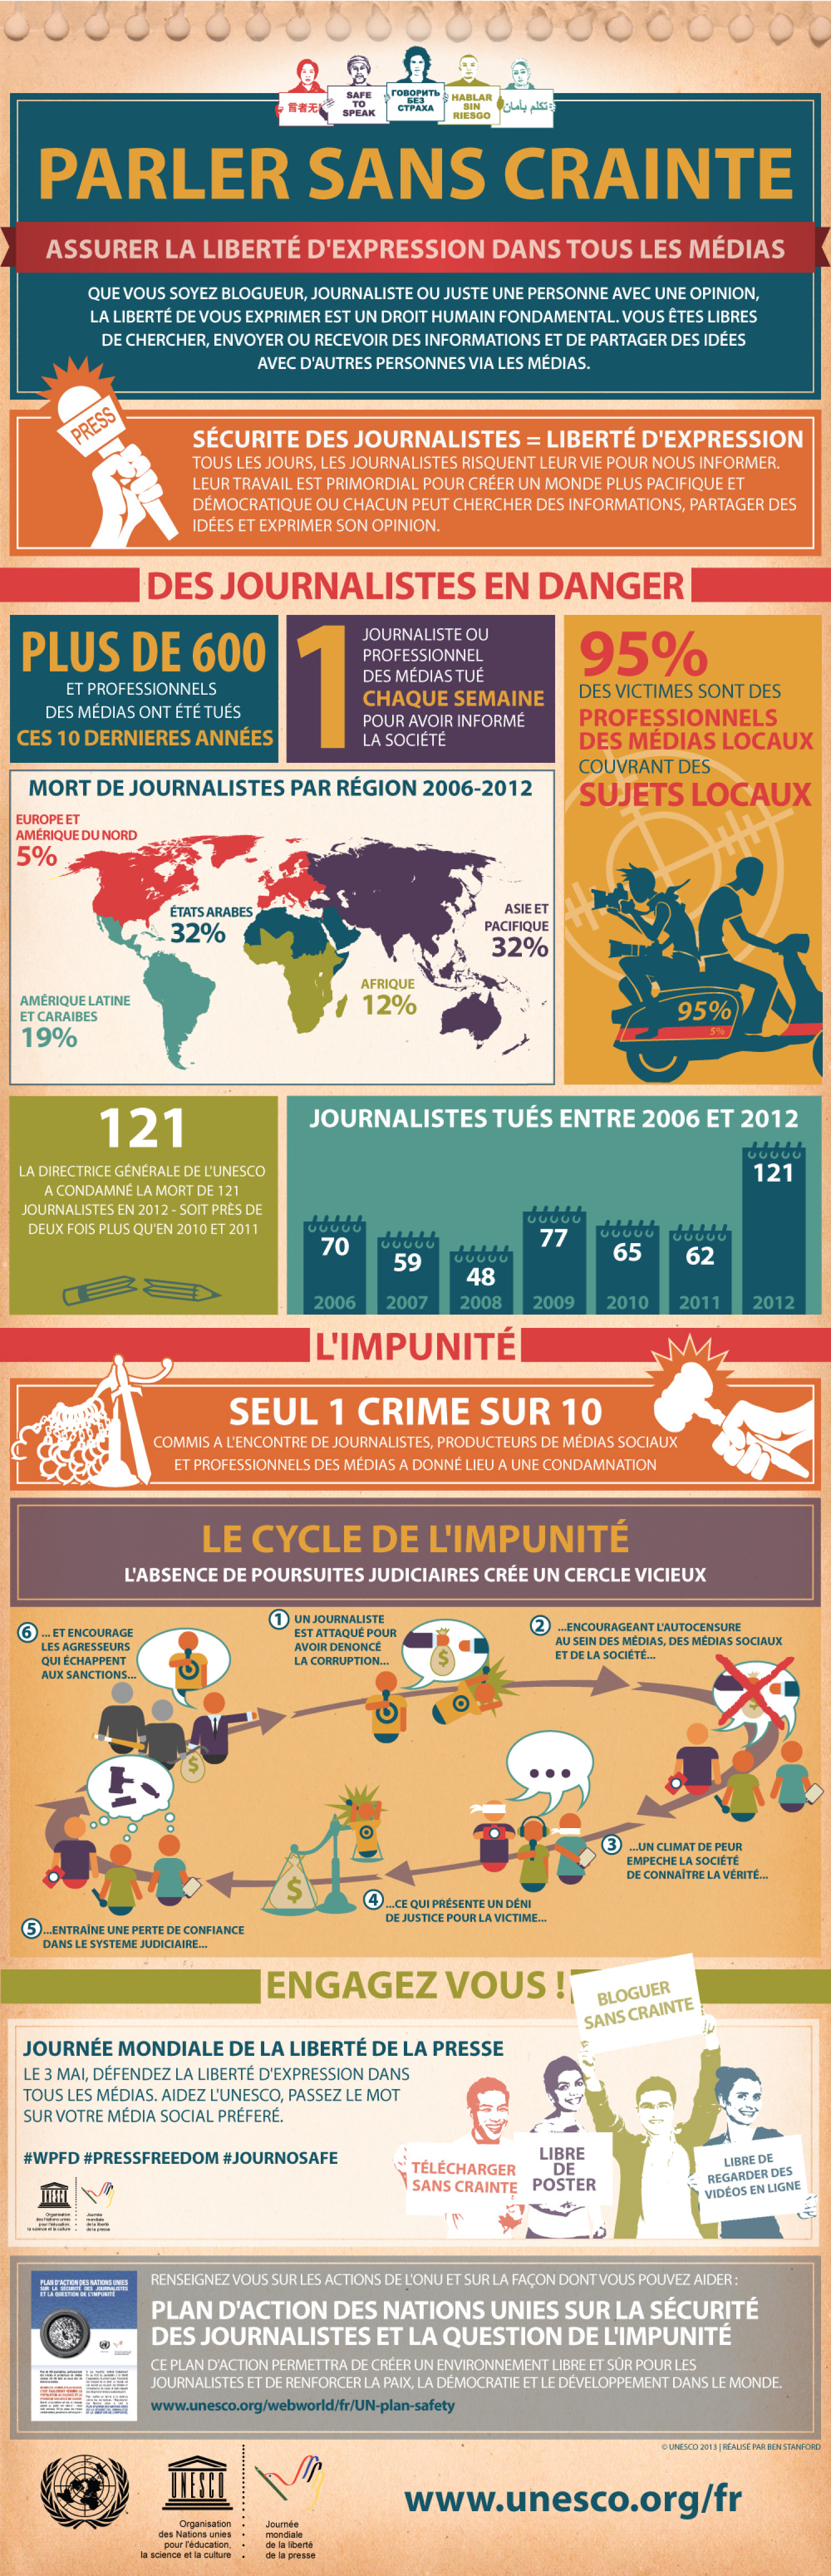 Crimes sans châtiment: Violences contre les journalistes Infographic